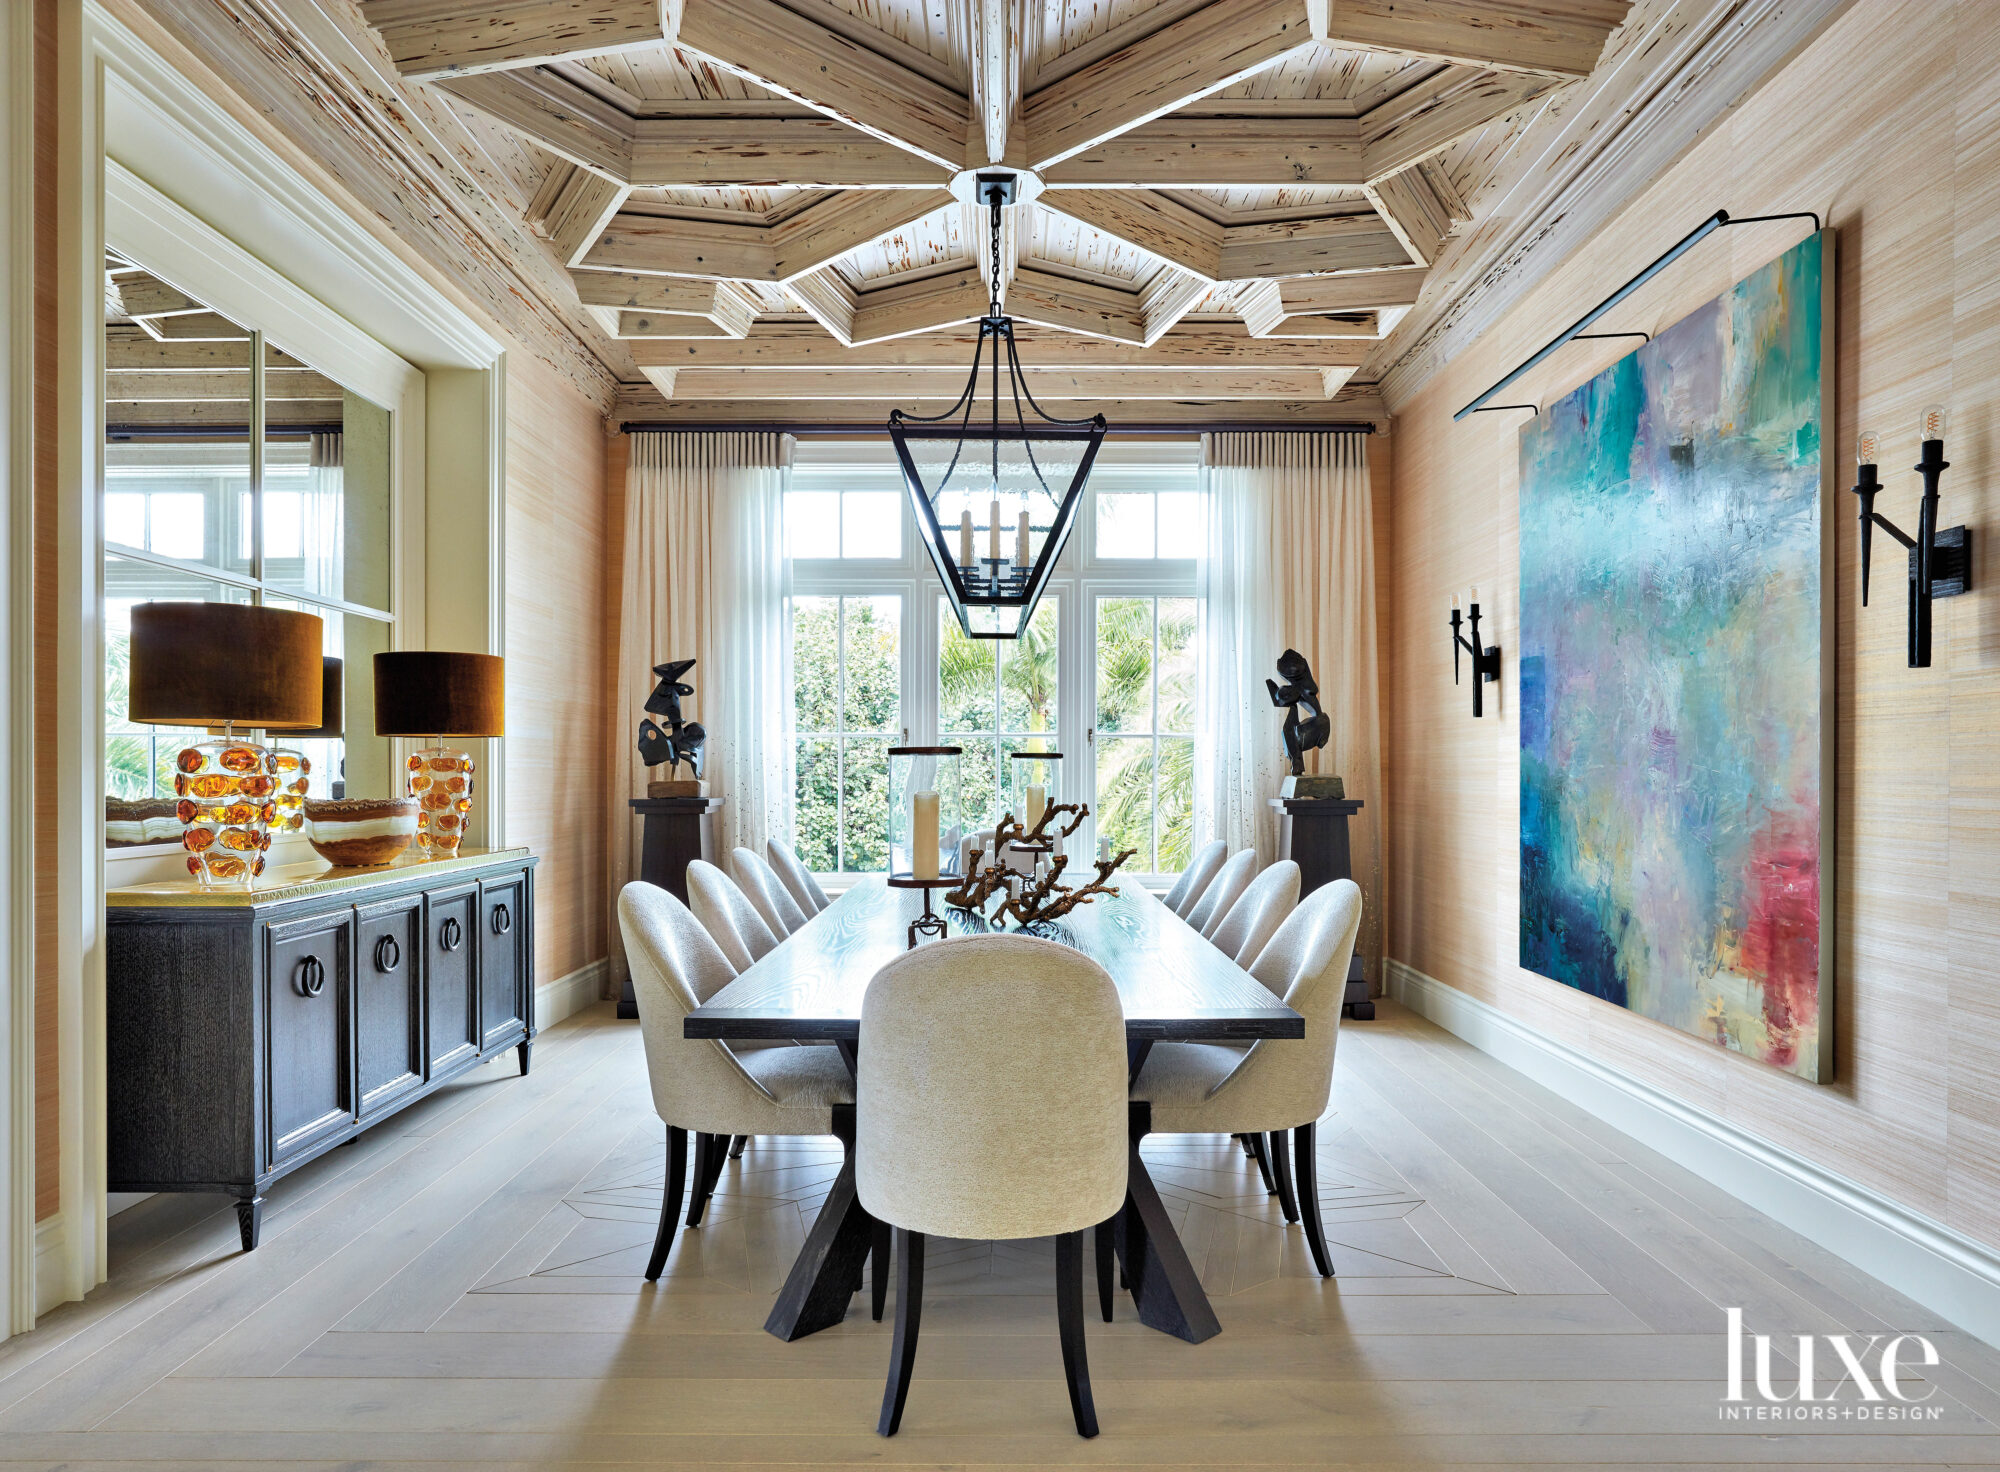 Dining room with detailed cypress ceiling